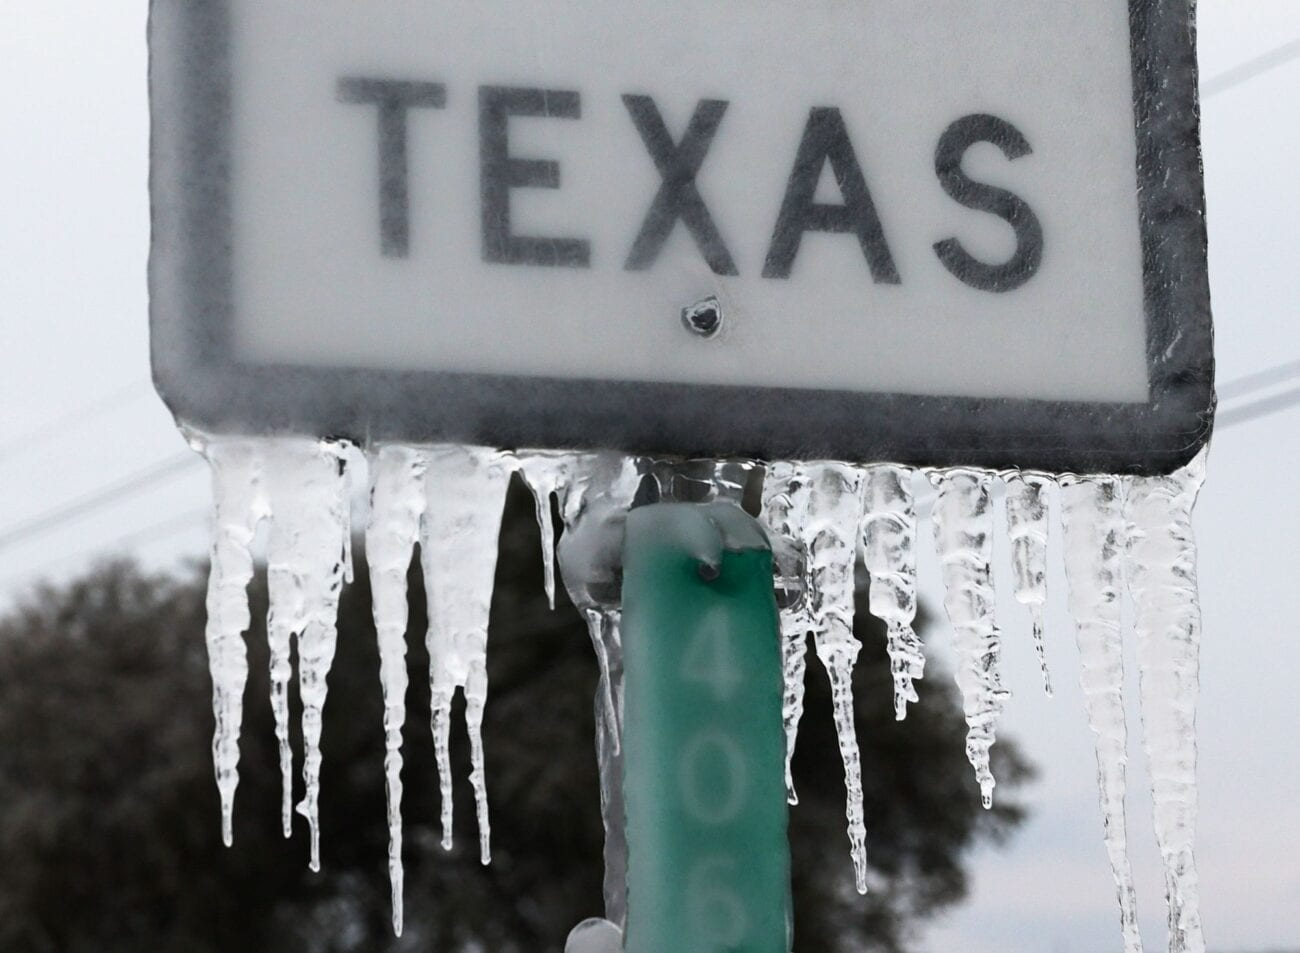 The devastation of Winter Storm Uri left Texas in a complete state of disarray this week. Did the snow storm inflict even more damage?